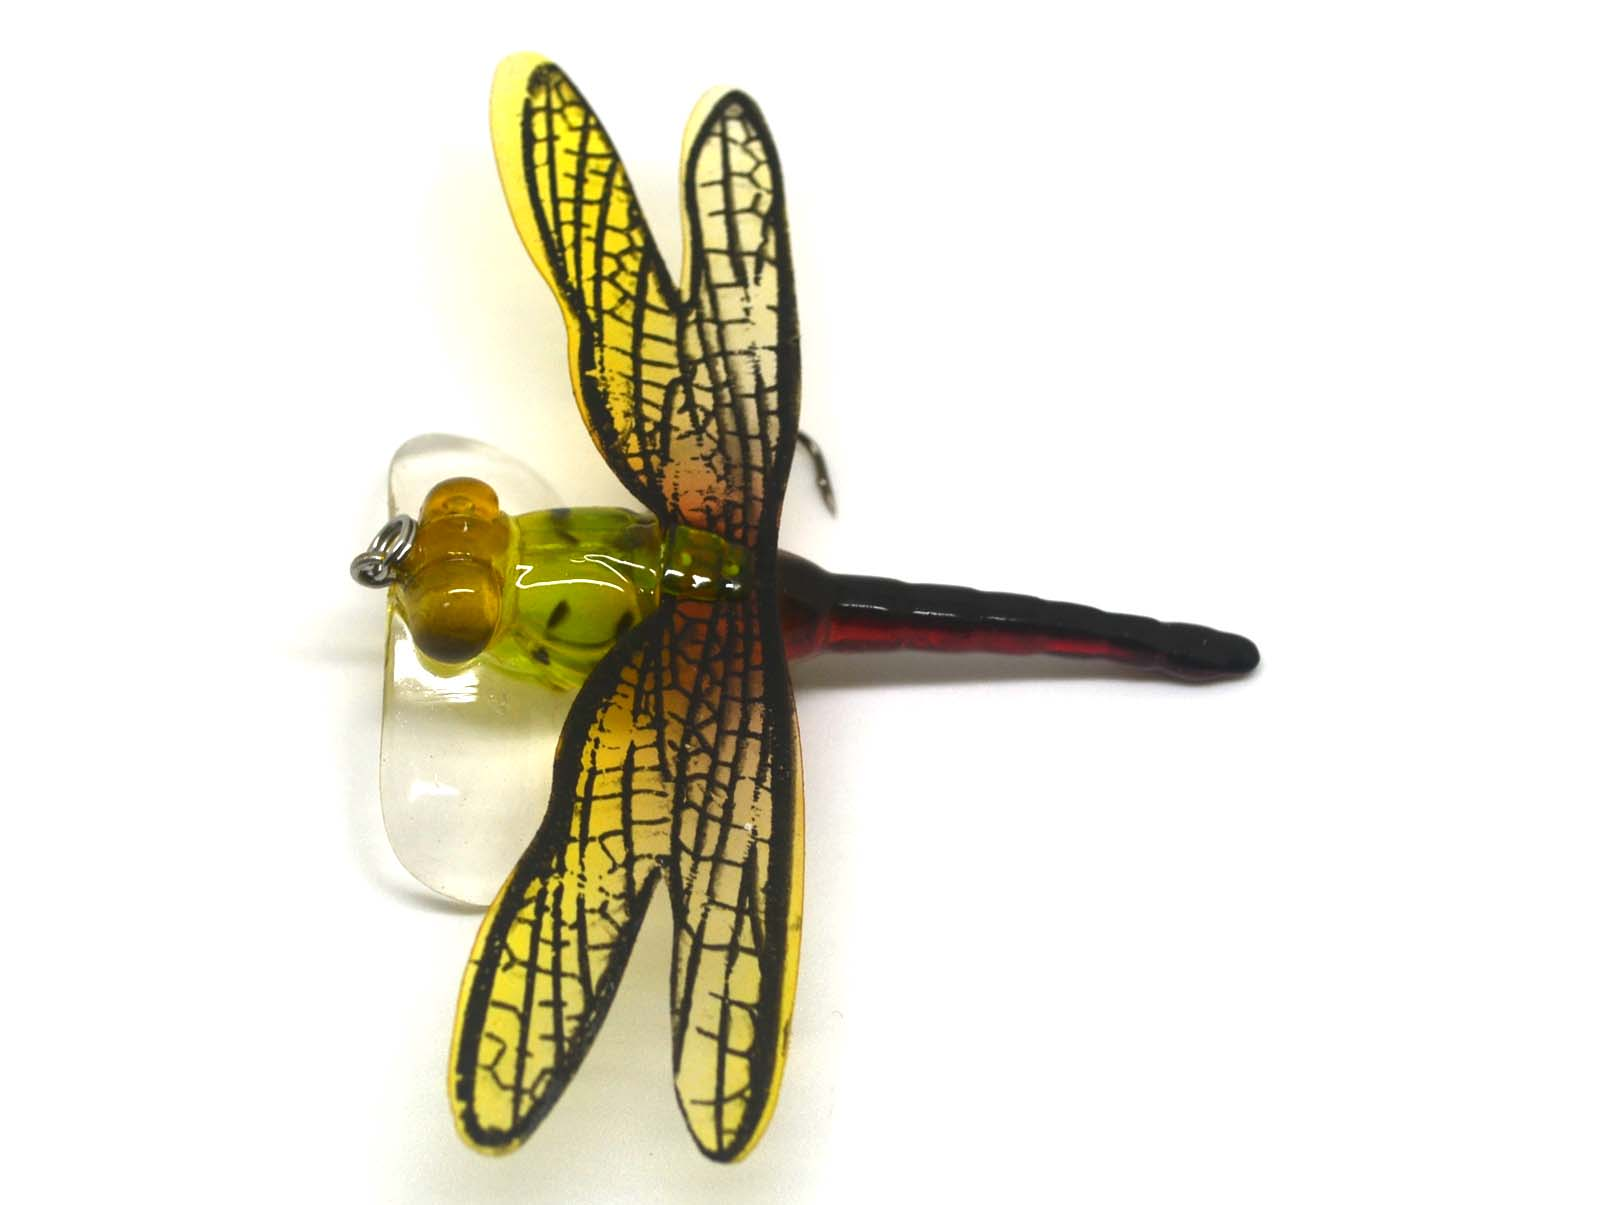 Popper Fishing Bait Lure Life Like Dragonfly Floating Fly